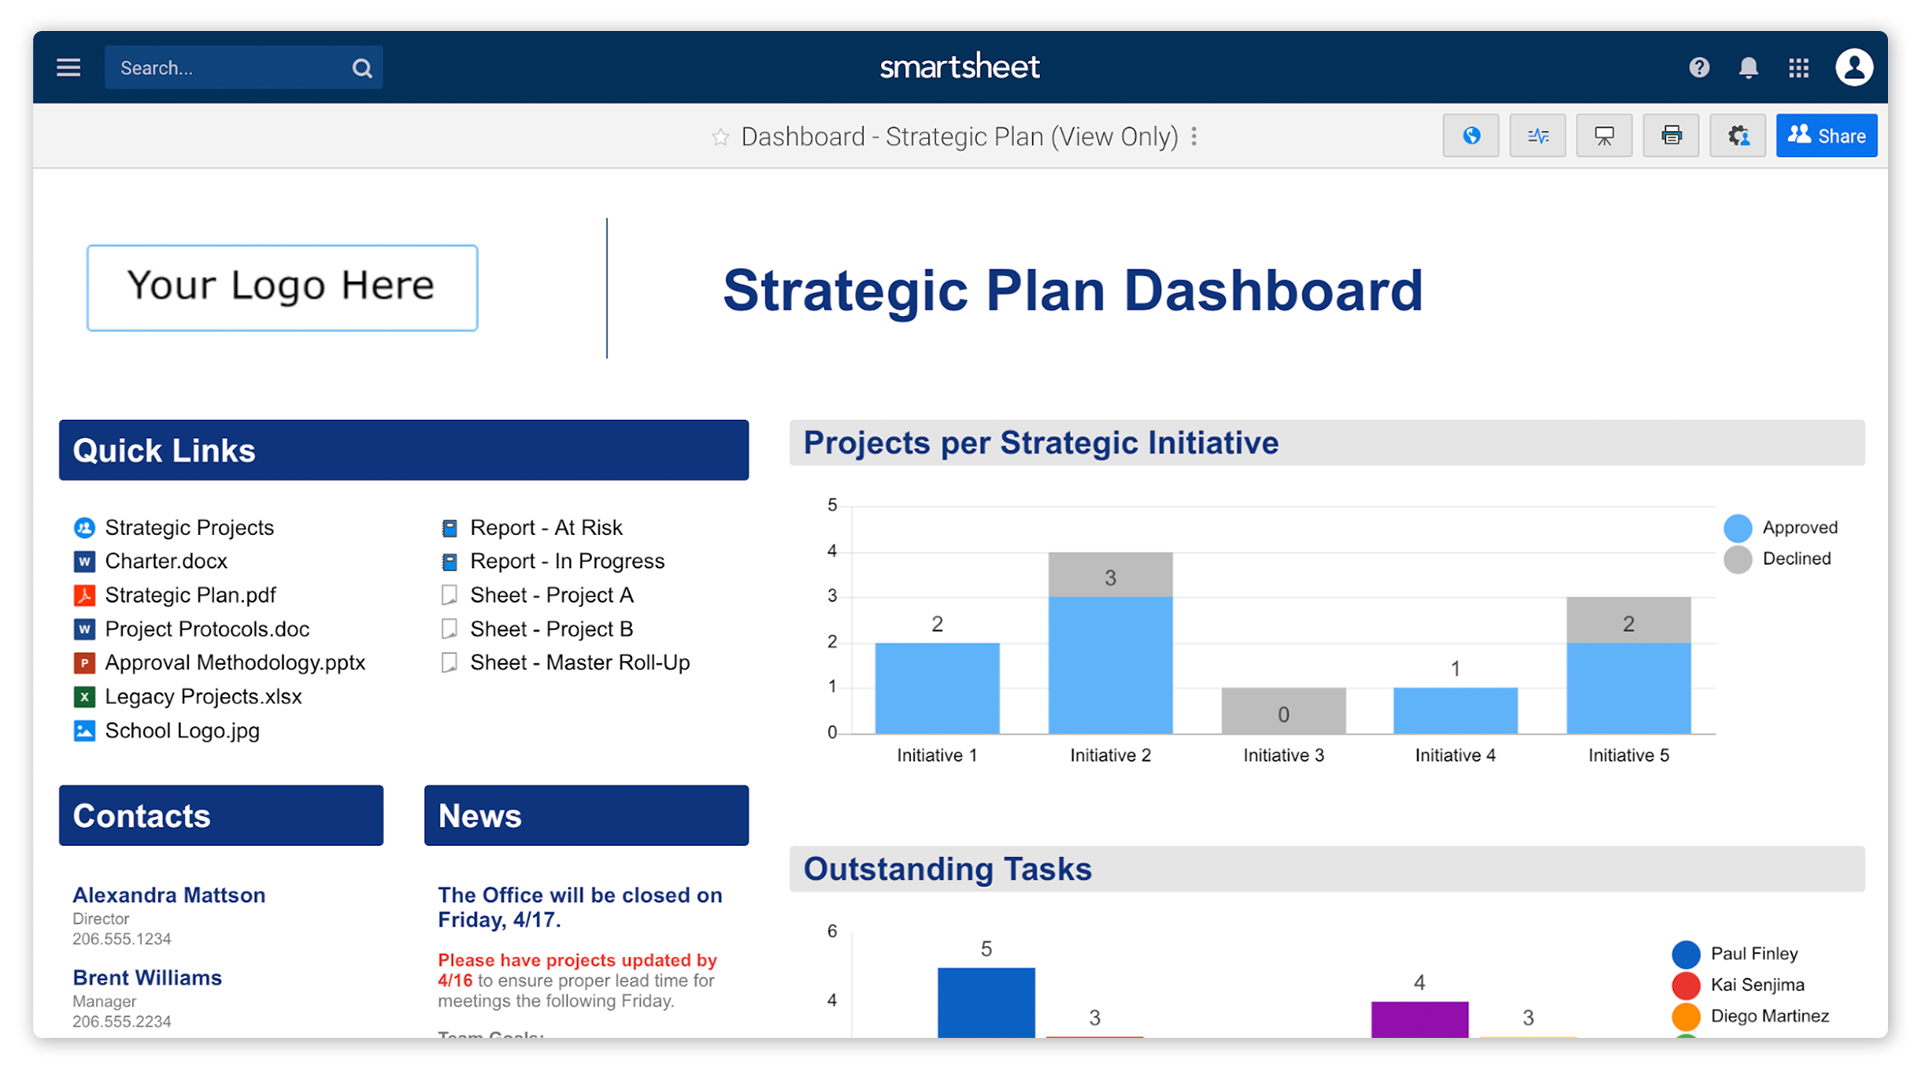 A Smartsheet dashboard illustrates an example of a strategic plan dashboard, including quick links, contact list, news section, and bar charts showing projects by initiative and outstanding tasks by owner